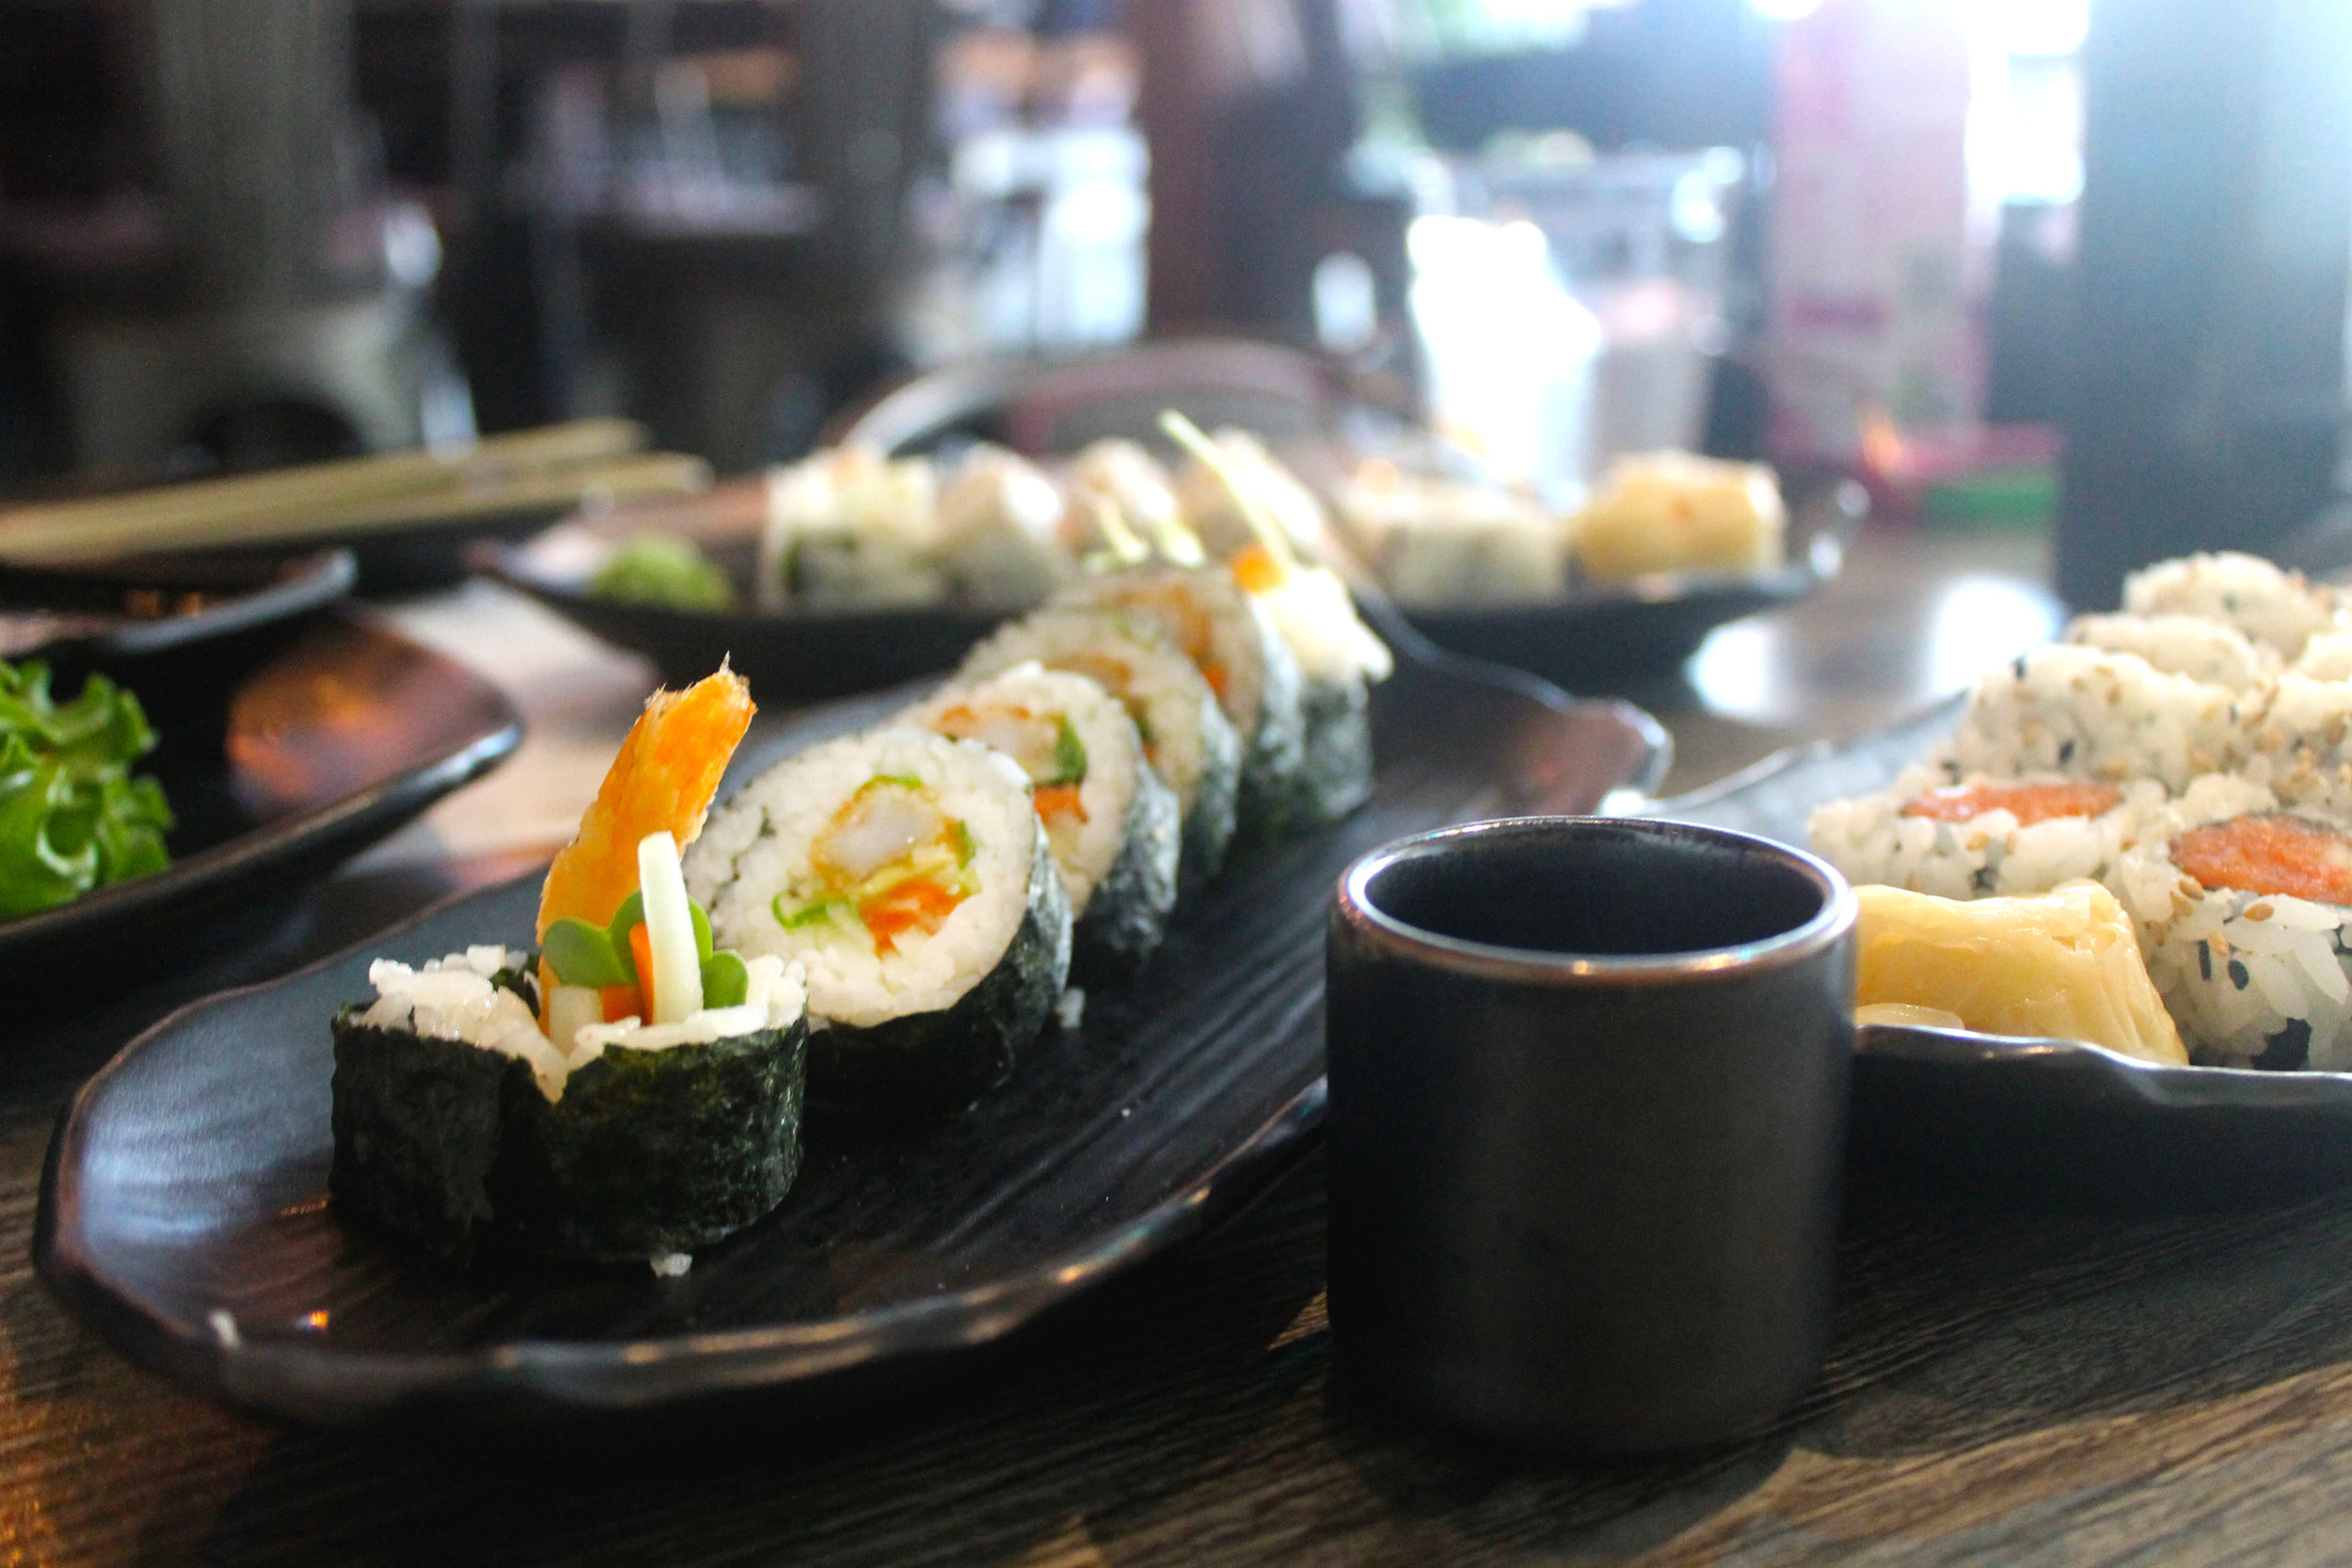 Food & Drink - Enjoy delicious rolls, craft cocktails, sake and more.